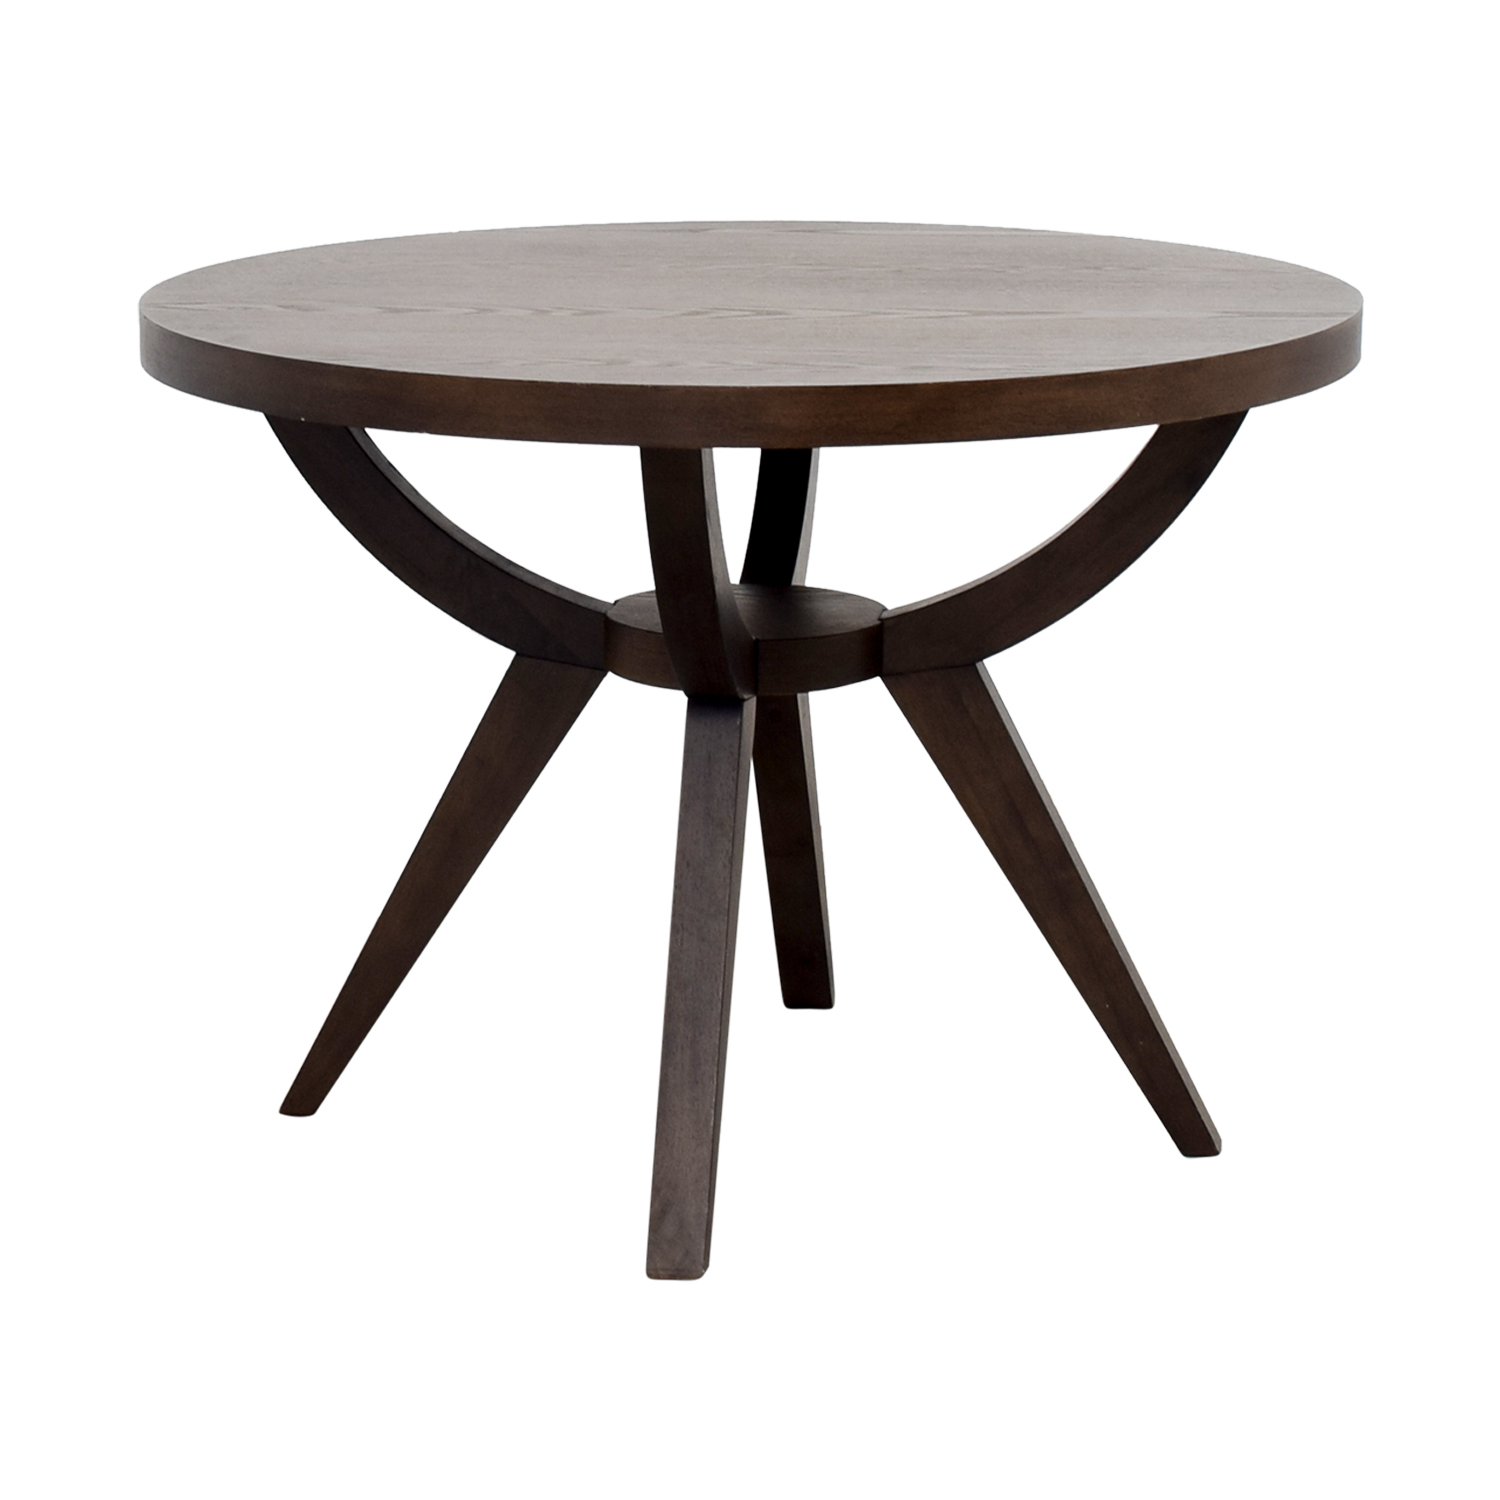 West Elm Arc Pedestal Dining Table sale